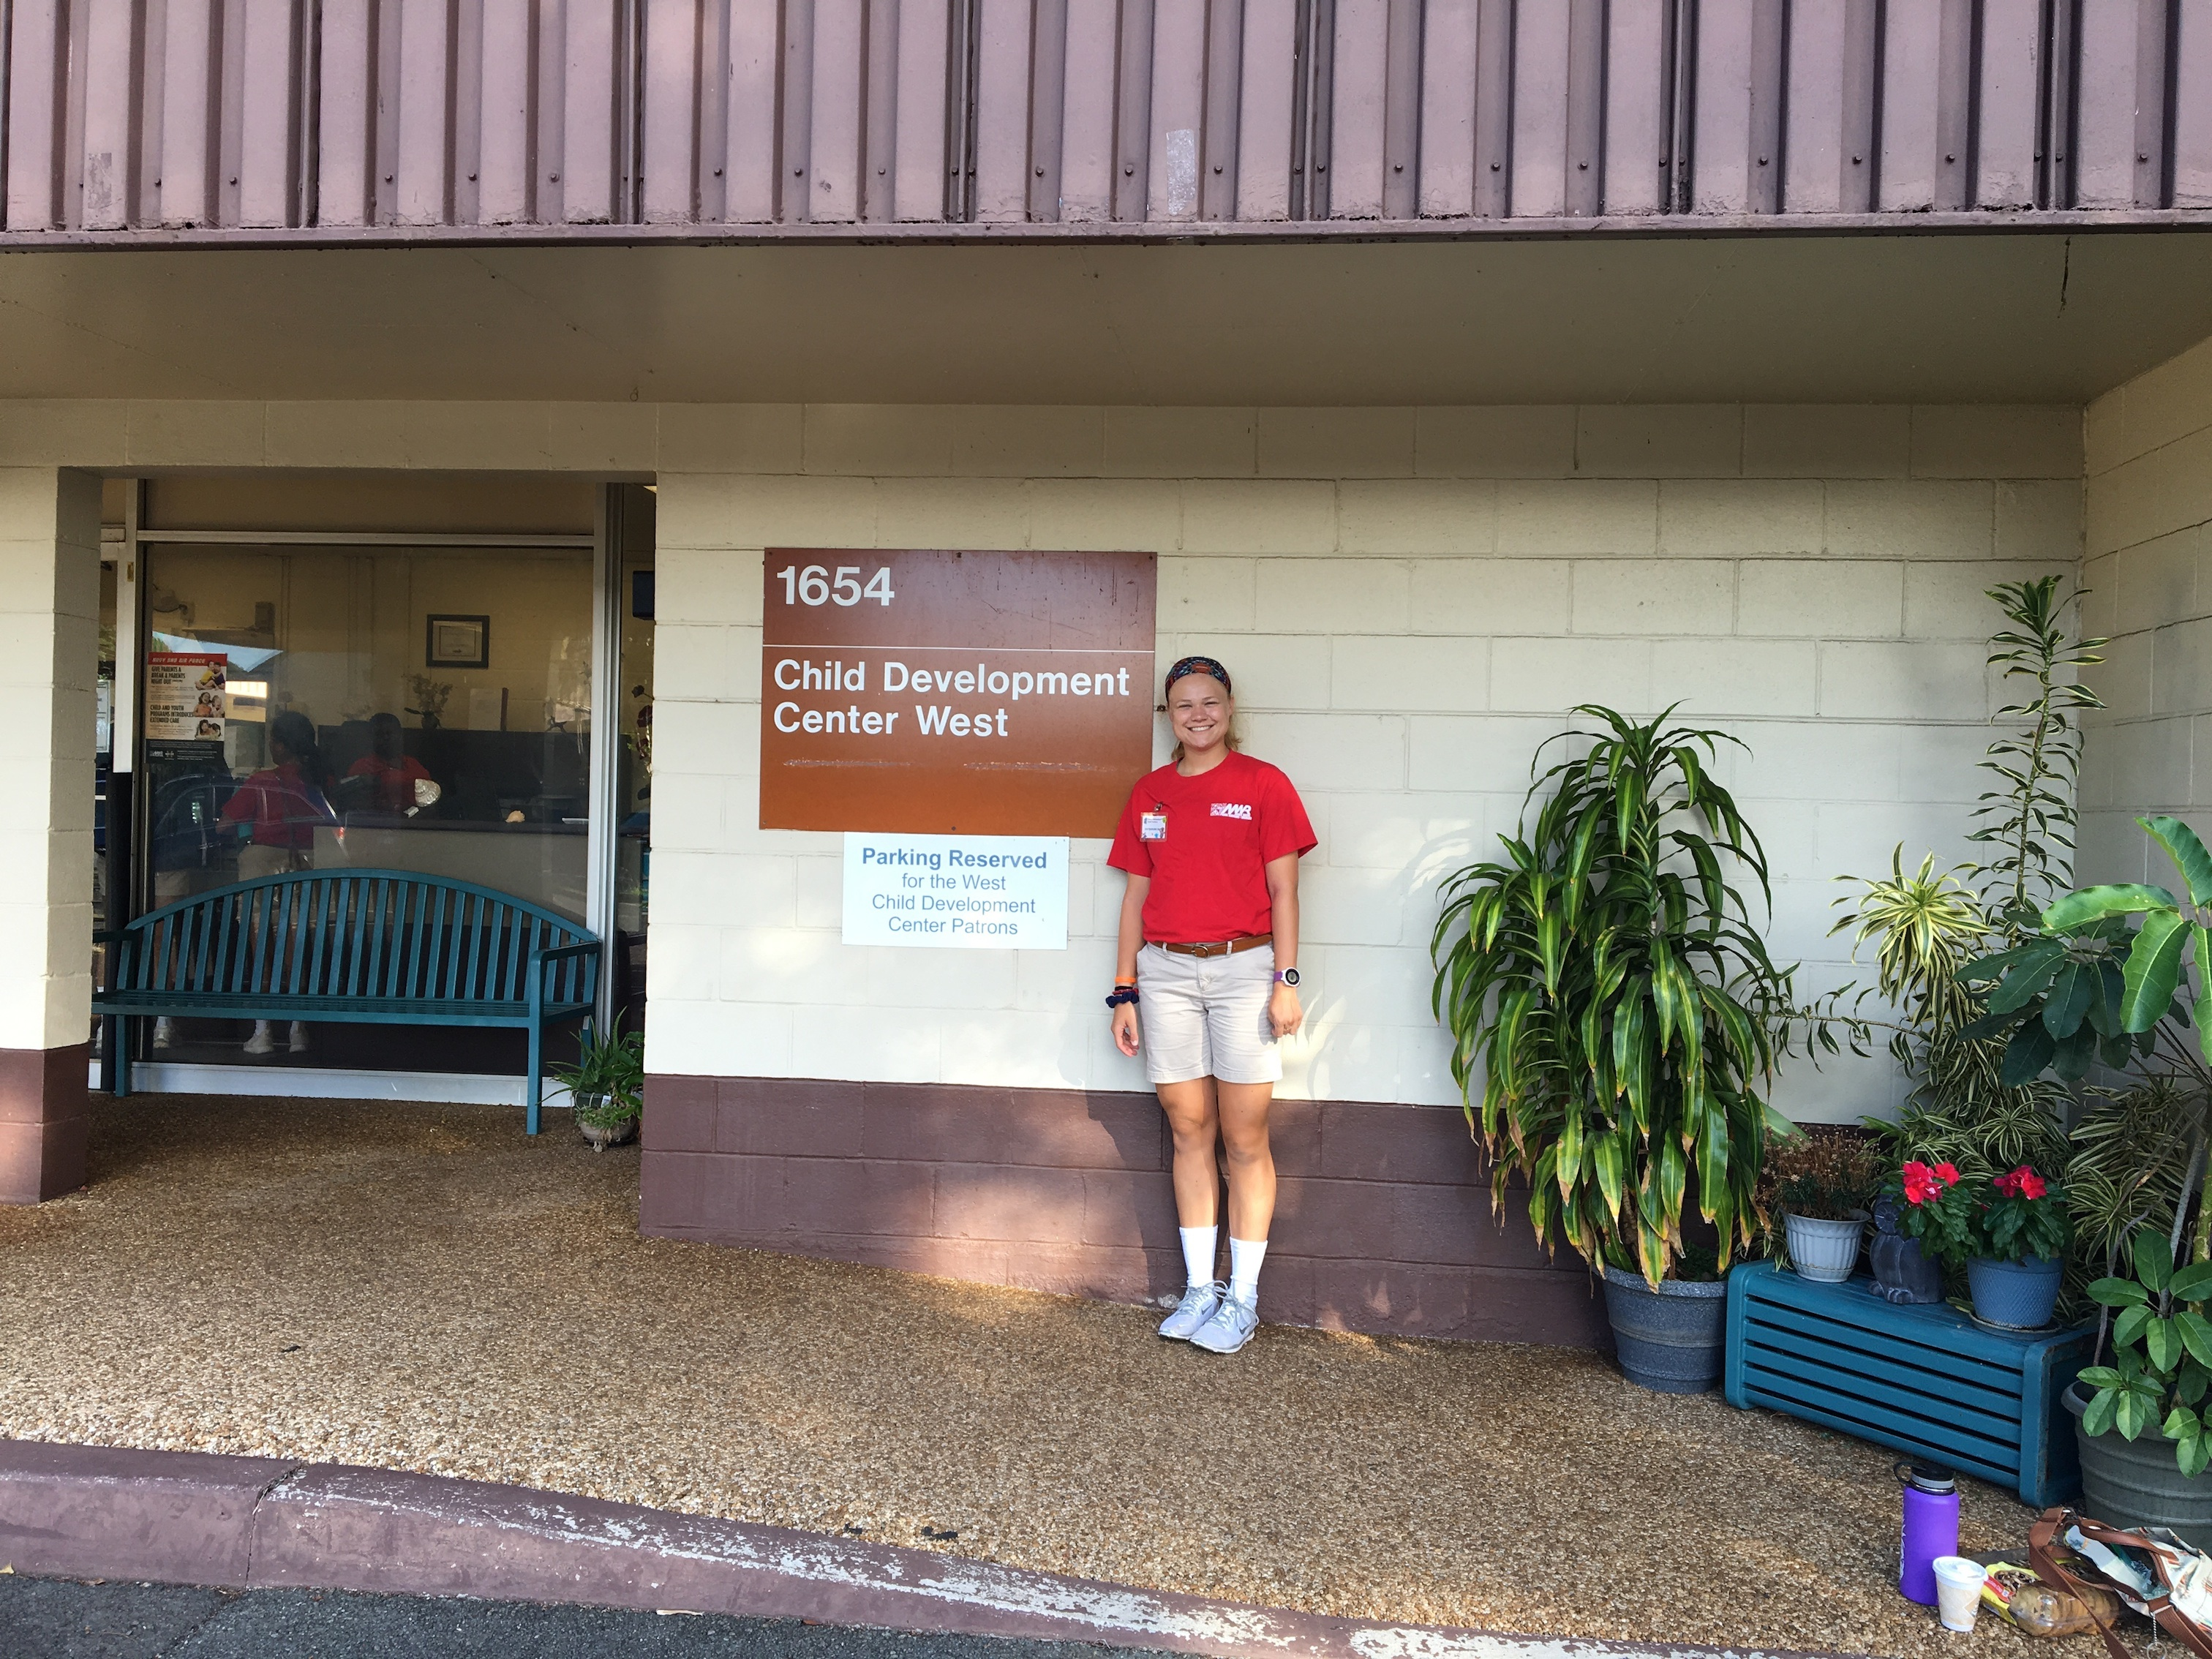 A student stands outside in front of a Child Development Center building.